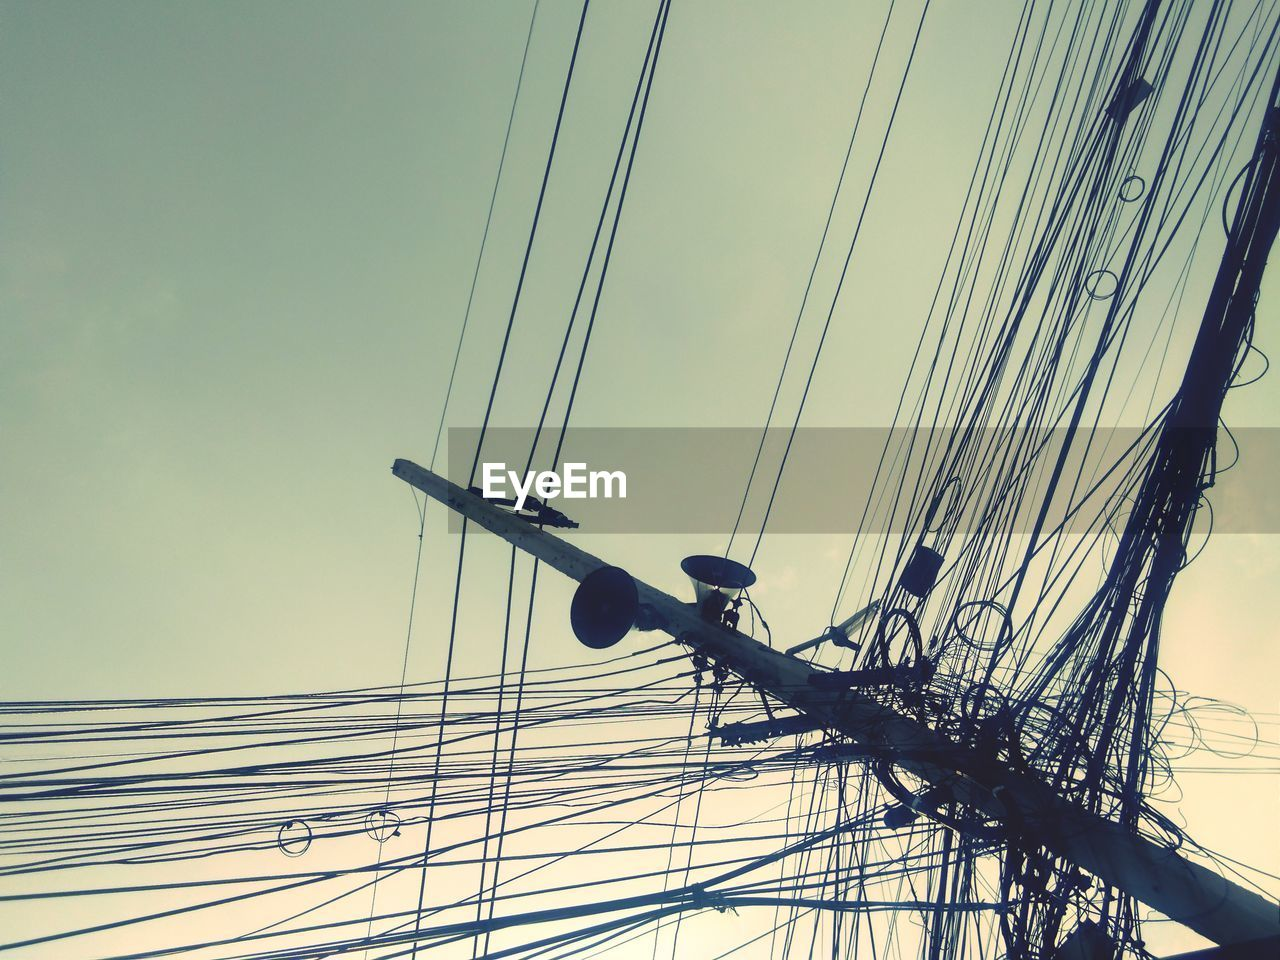 LOW ANGLE VIEW OF CABLES AGAINST SKY